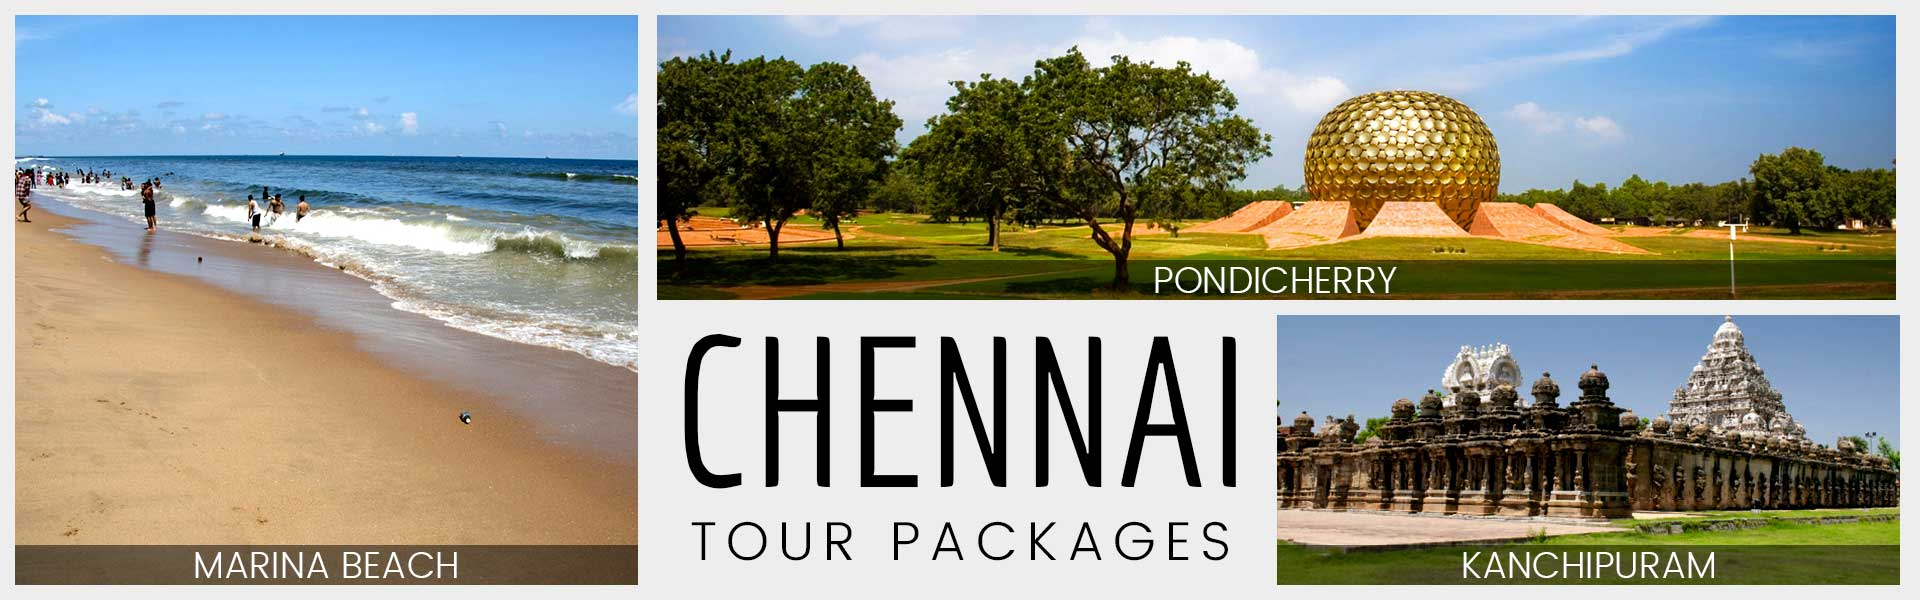 chennai-tour-packages